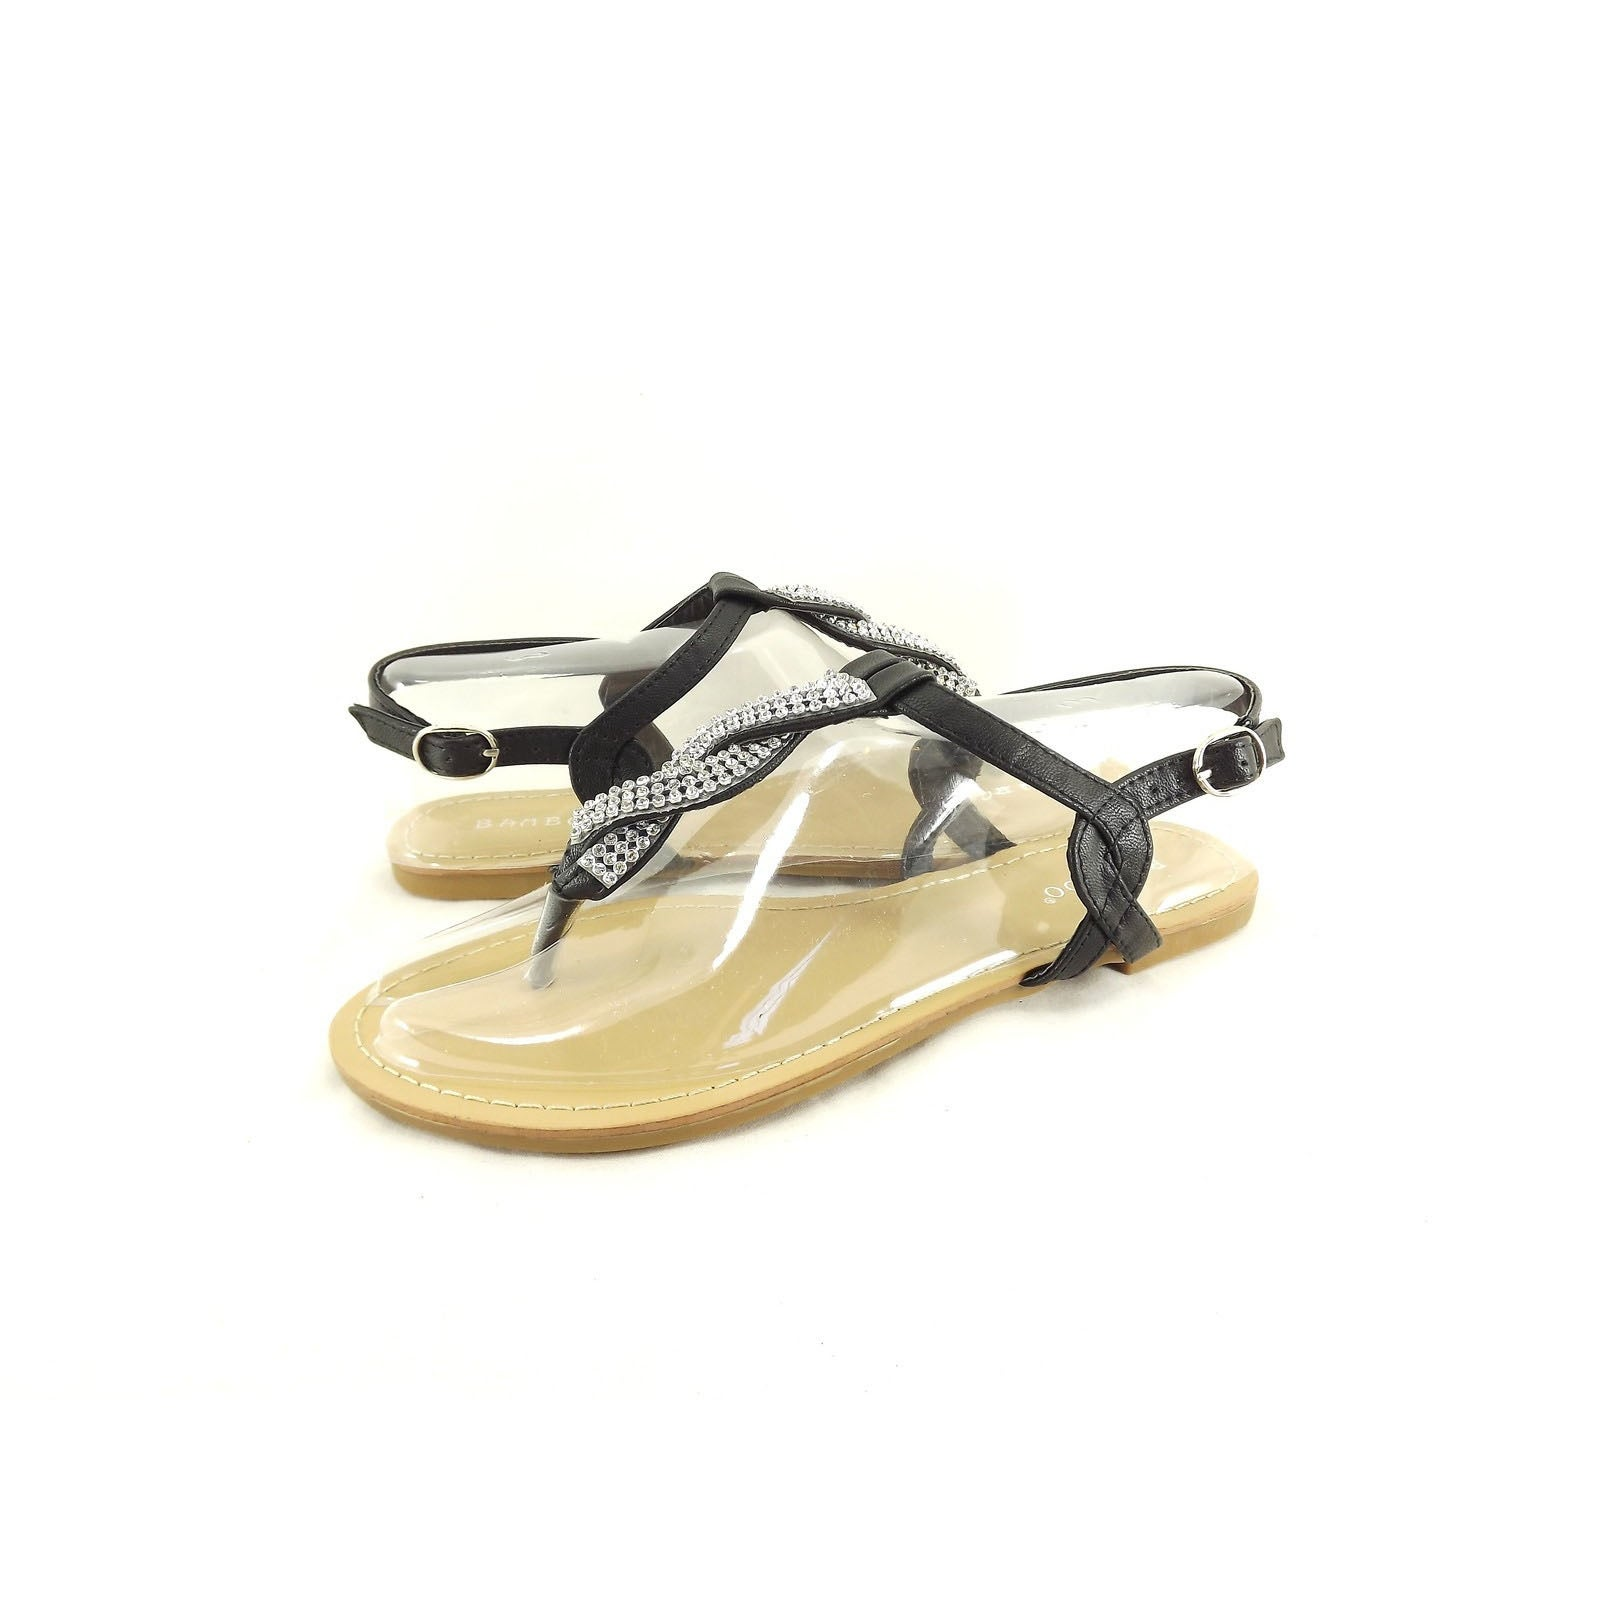 9af0f7325 Buy Bamboo Women s Sandals Online at Overstock